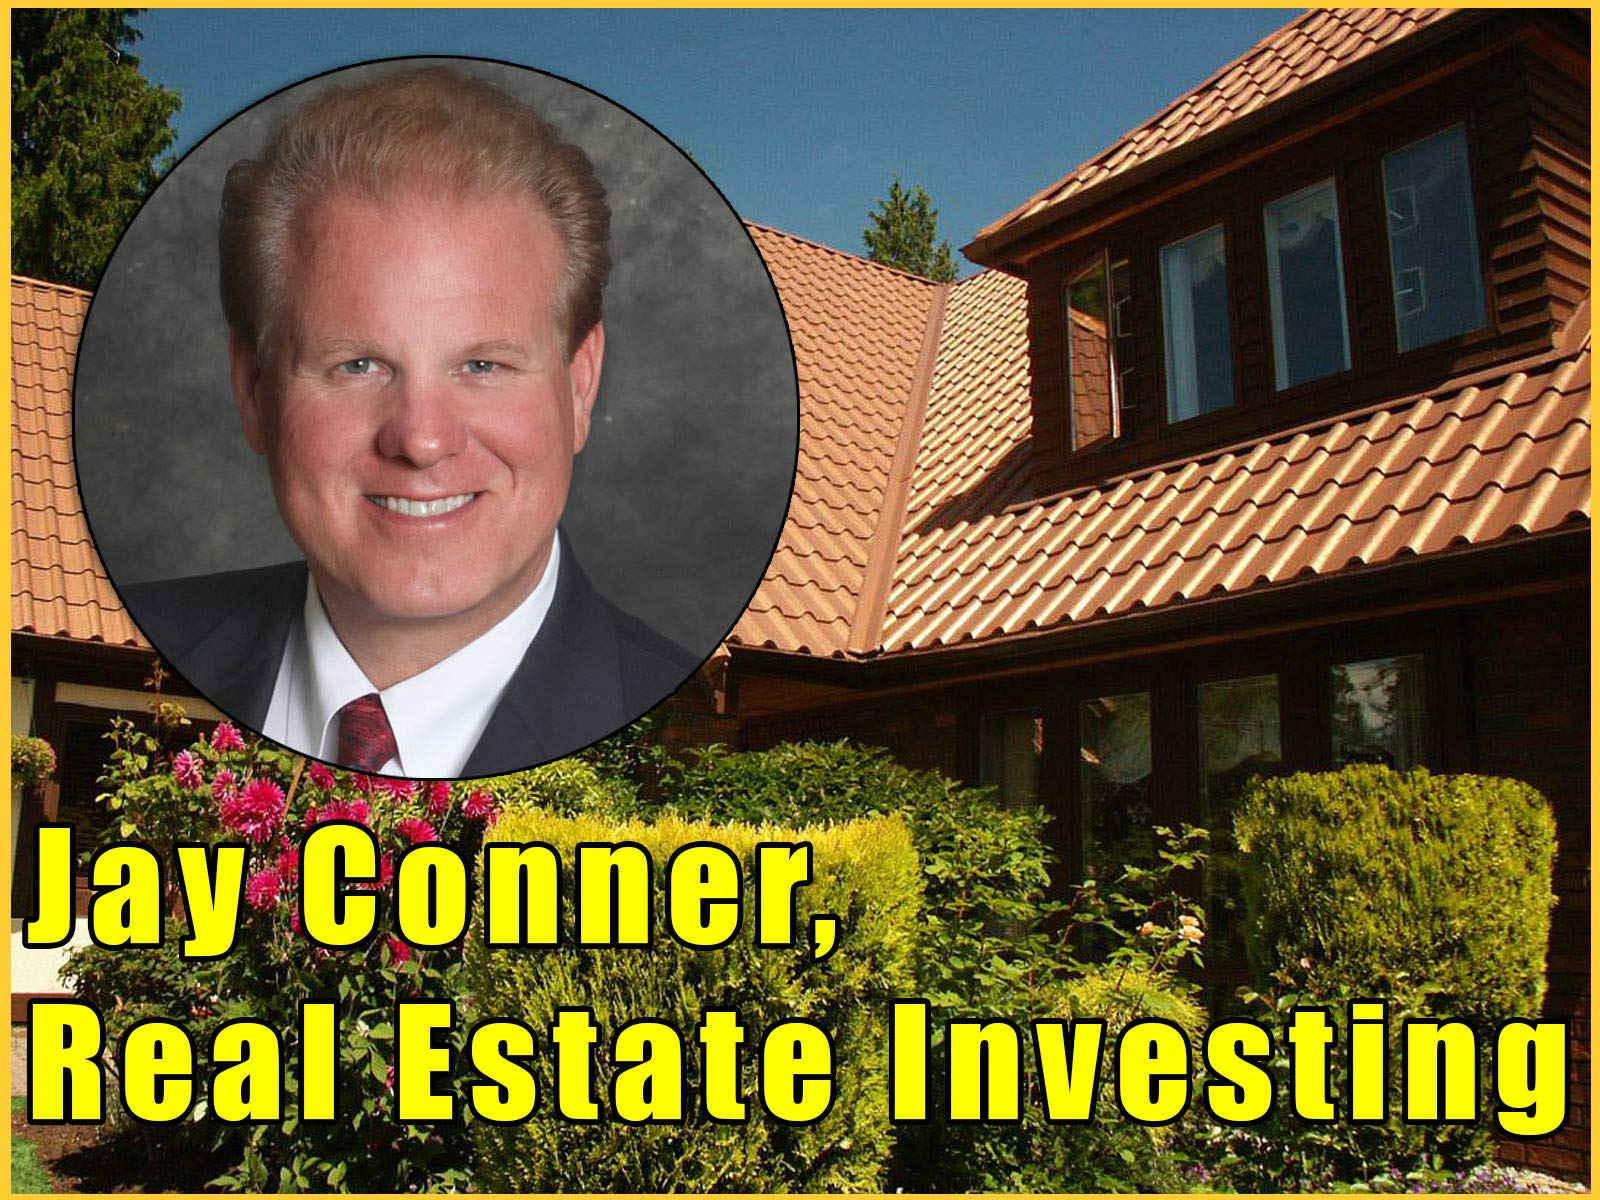 Jay Conner, Real Estate Investing - Season 1